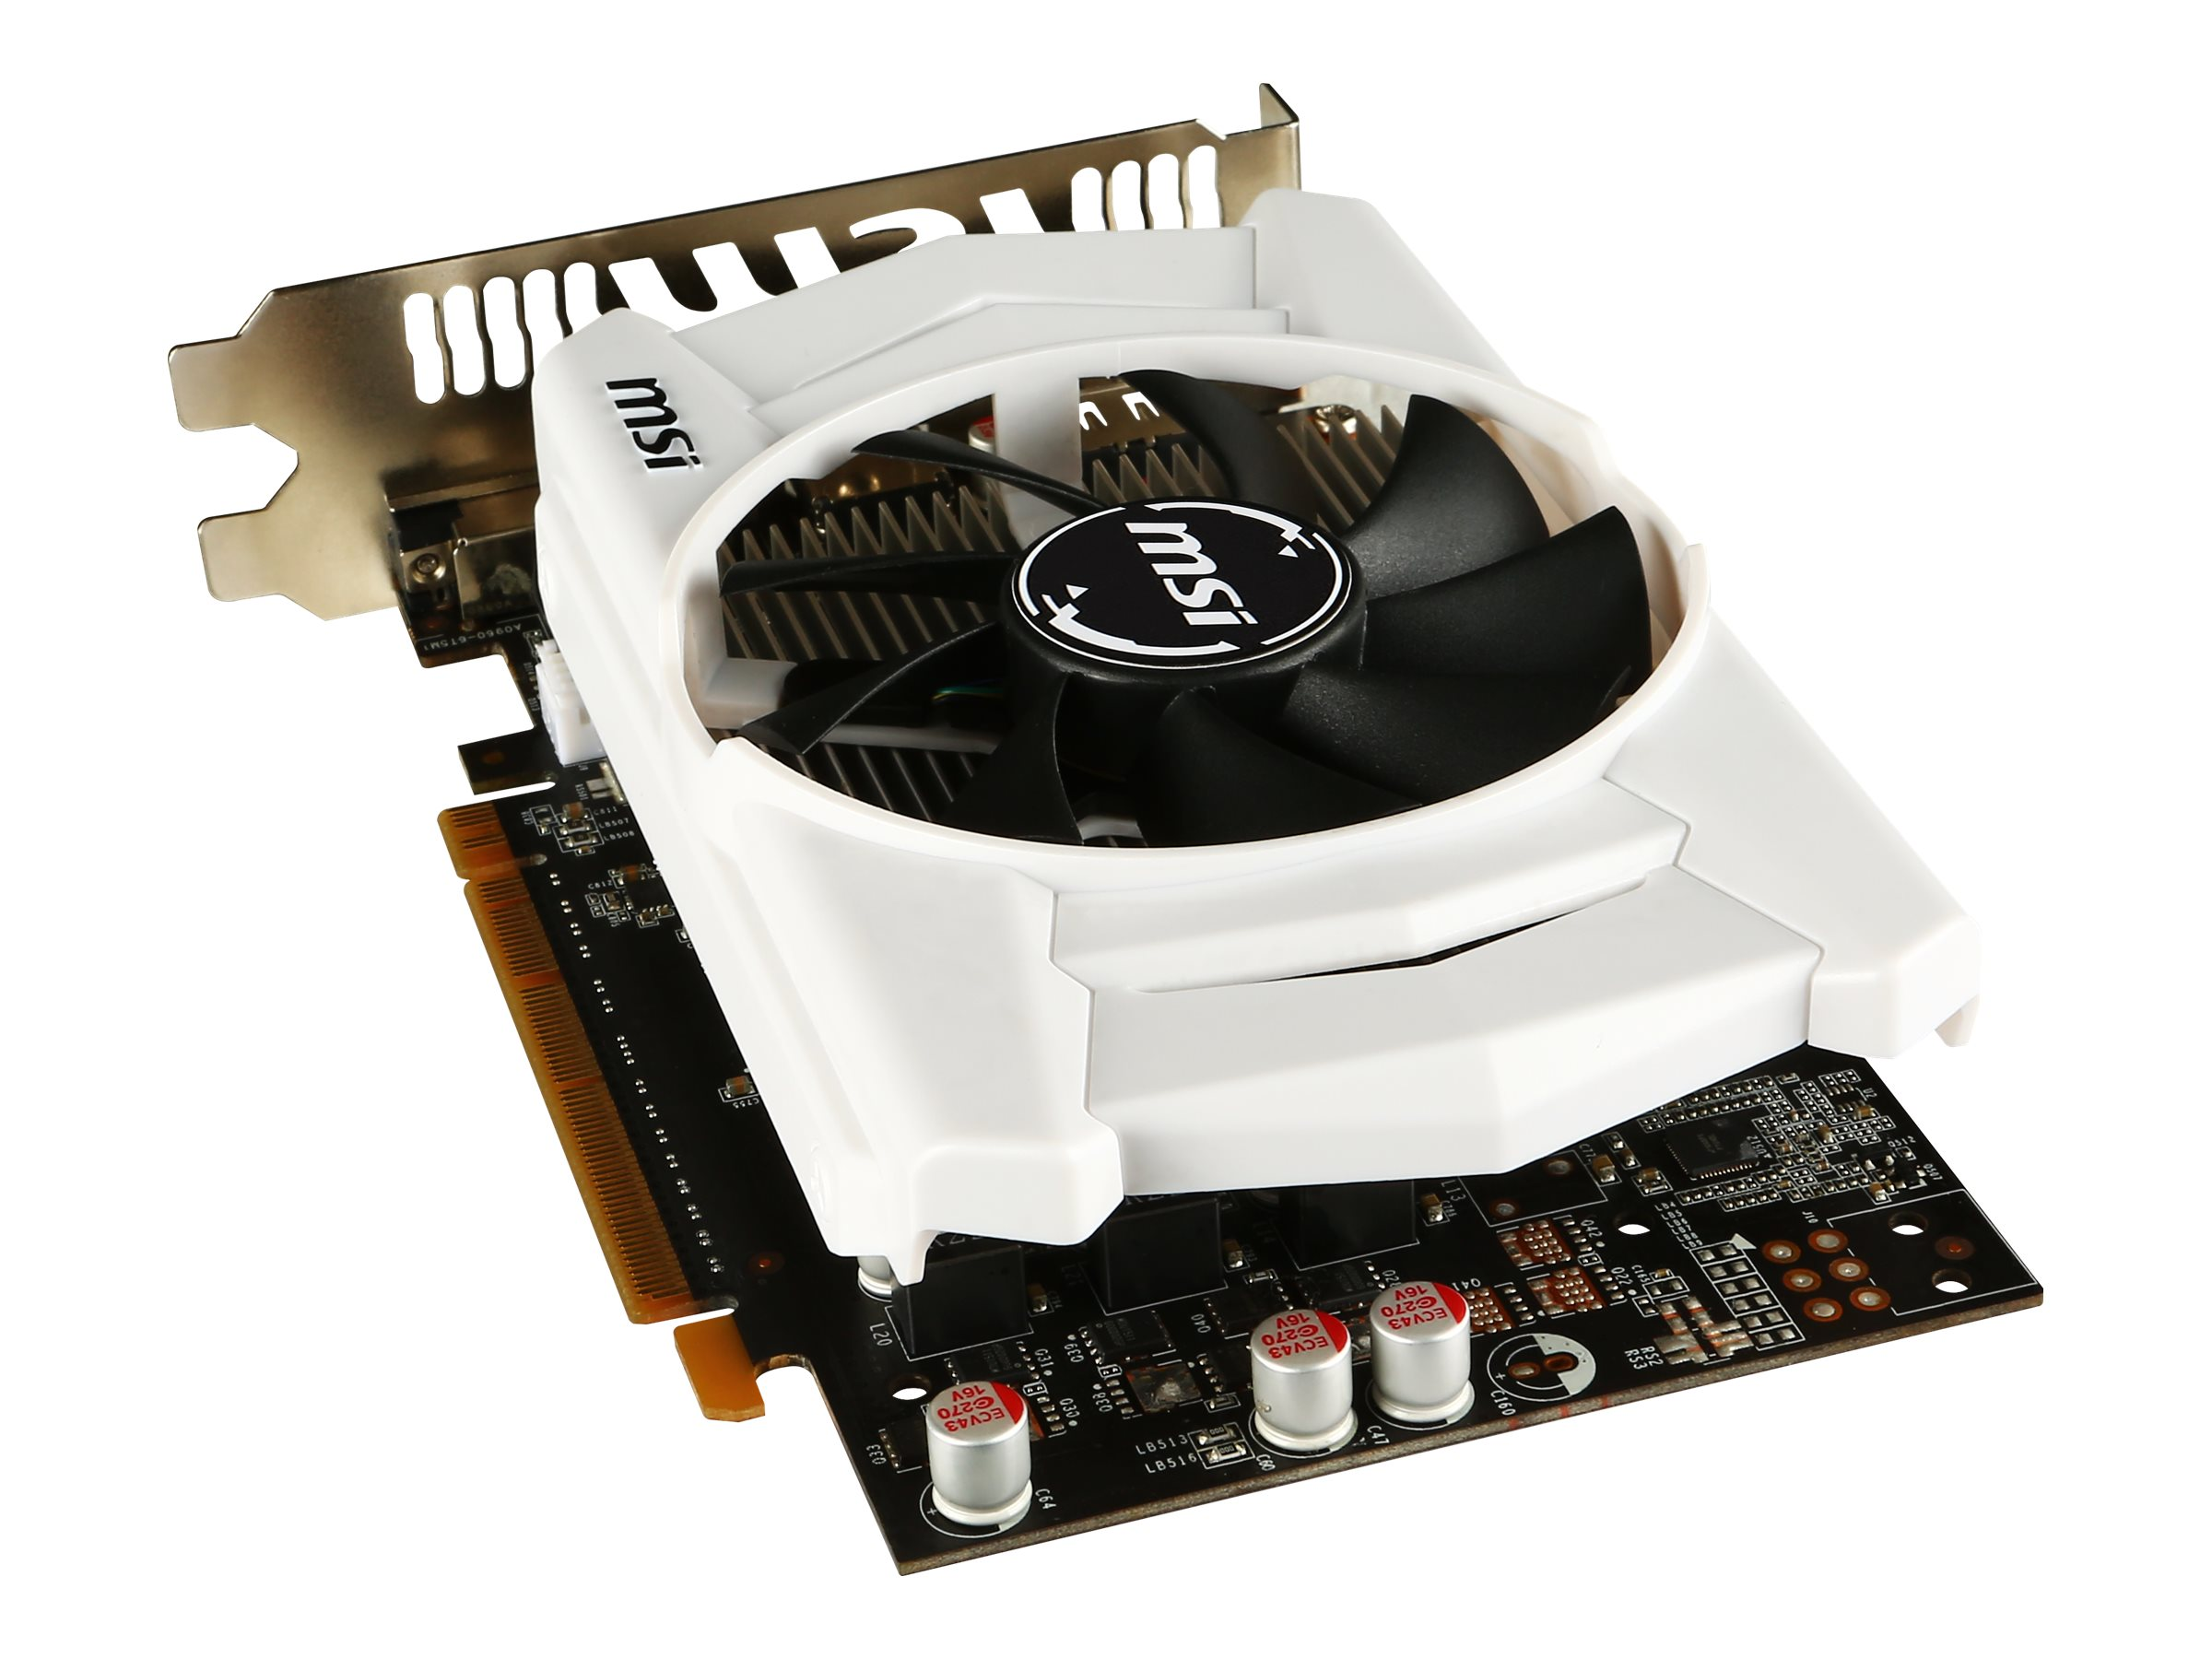 Microstar GeForce GTX 950 PCIe 3.0 x16 Graphics Card, 2GB GDDR5